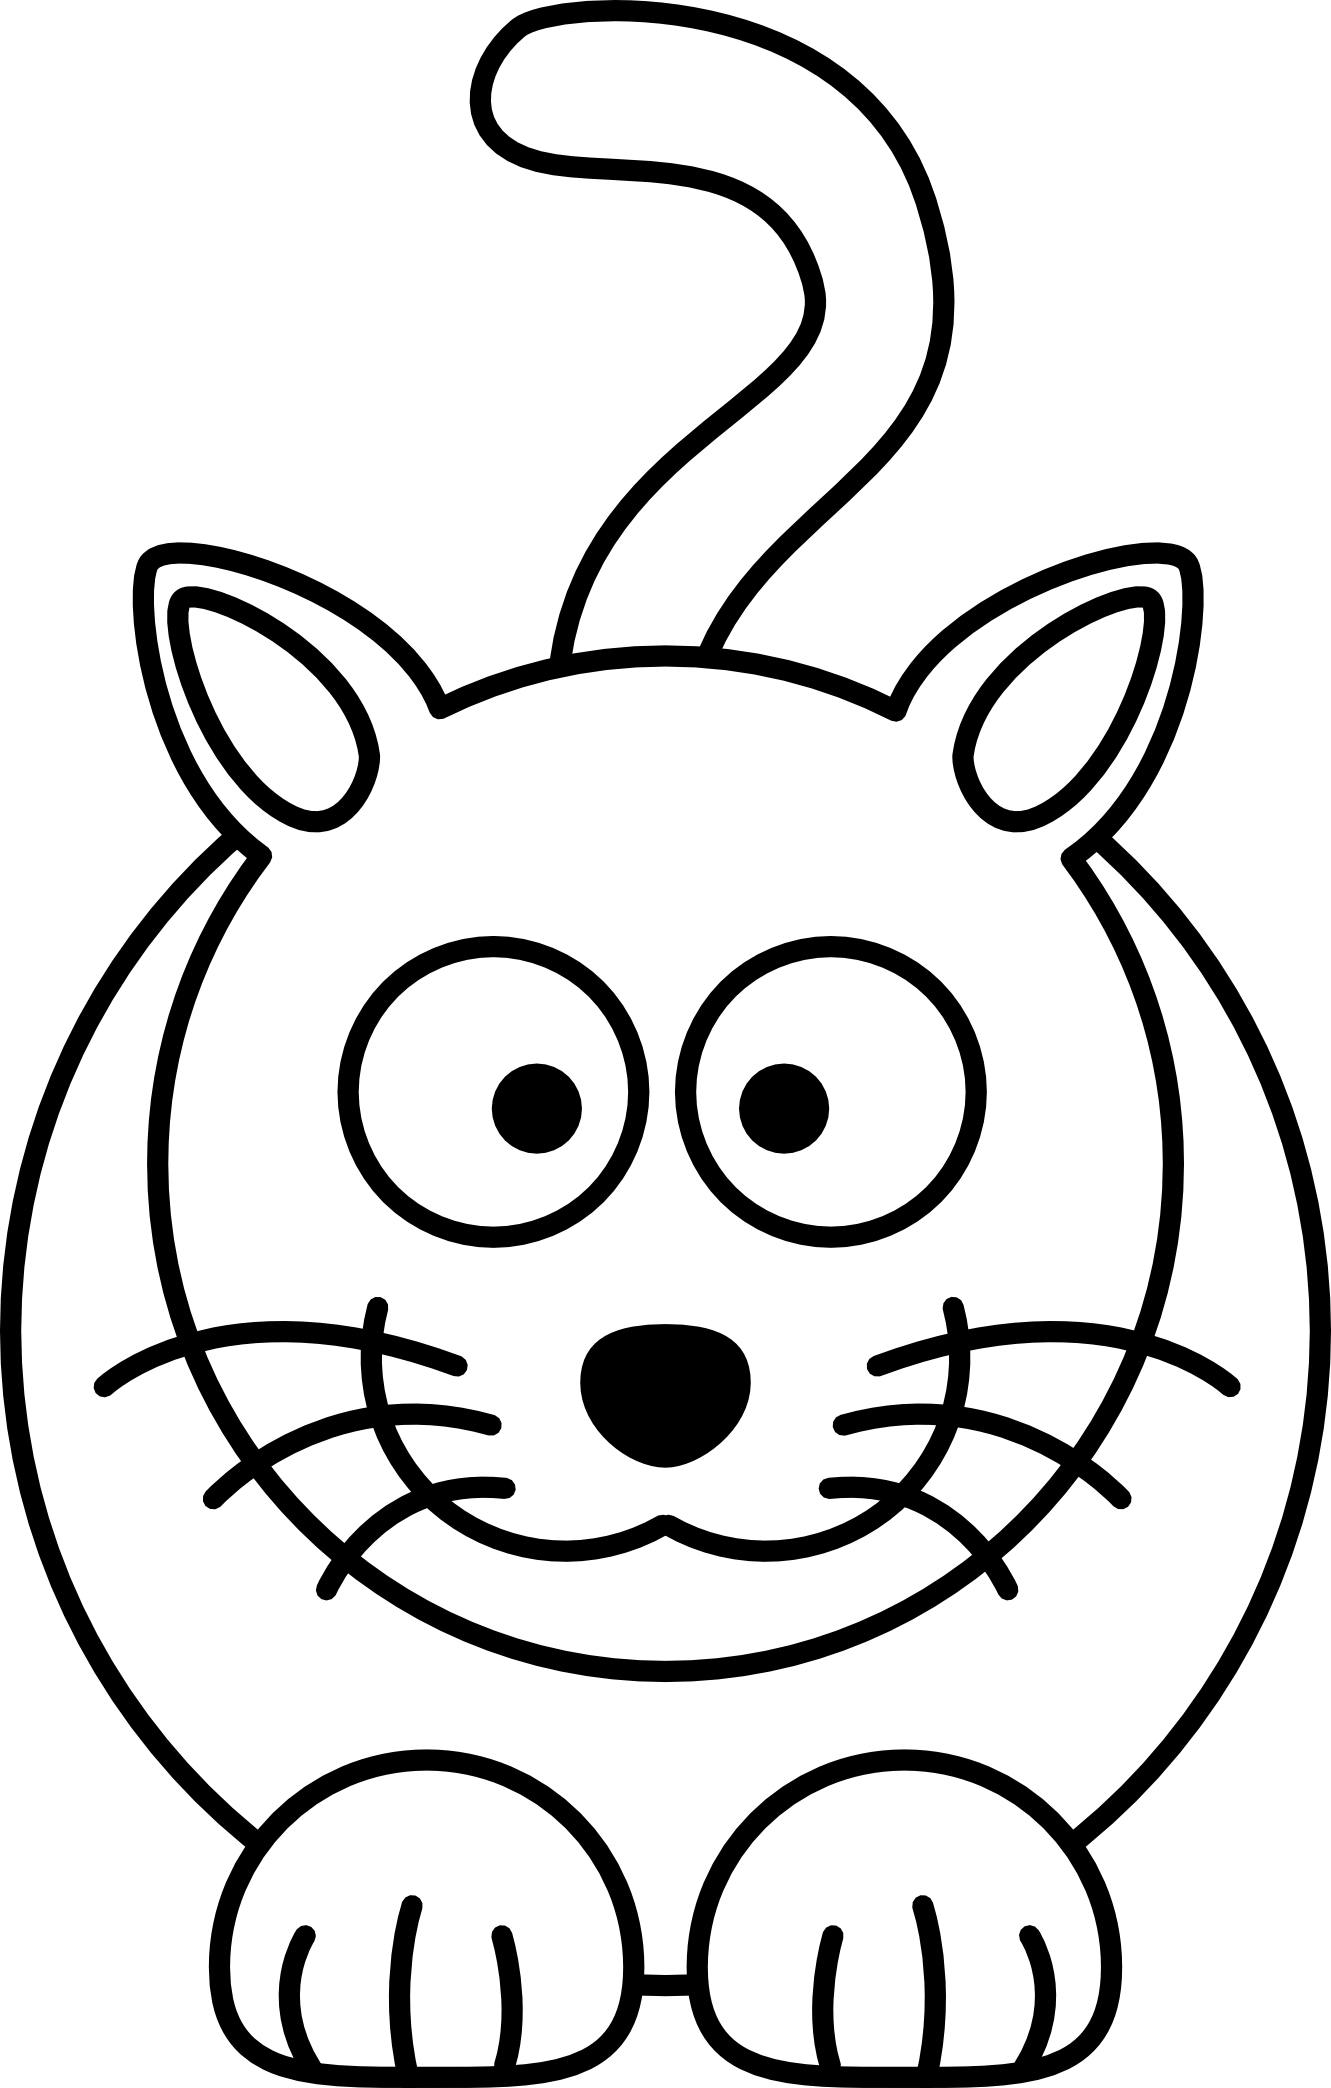 jpg download Line of cat at. Drawing stitch easy